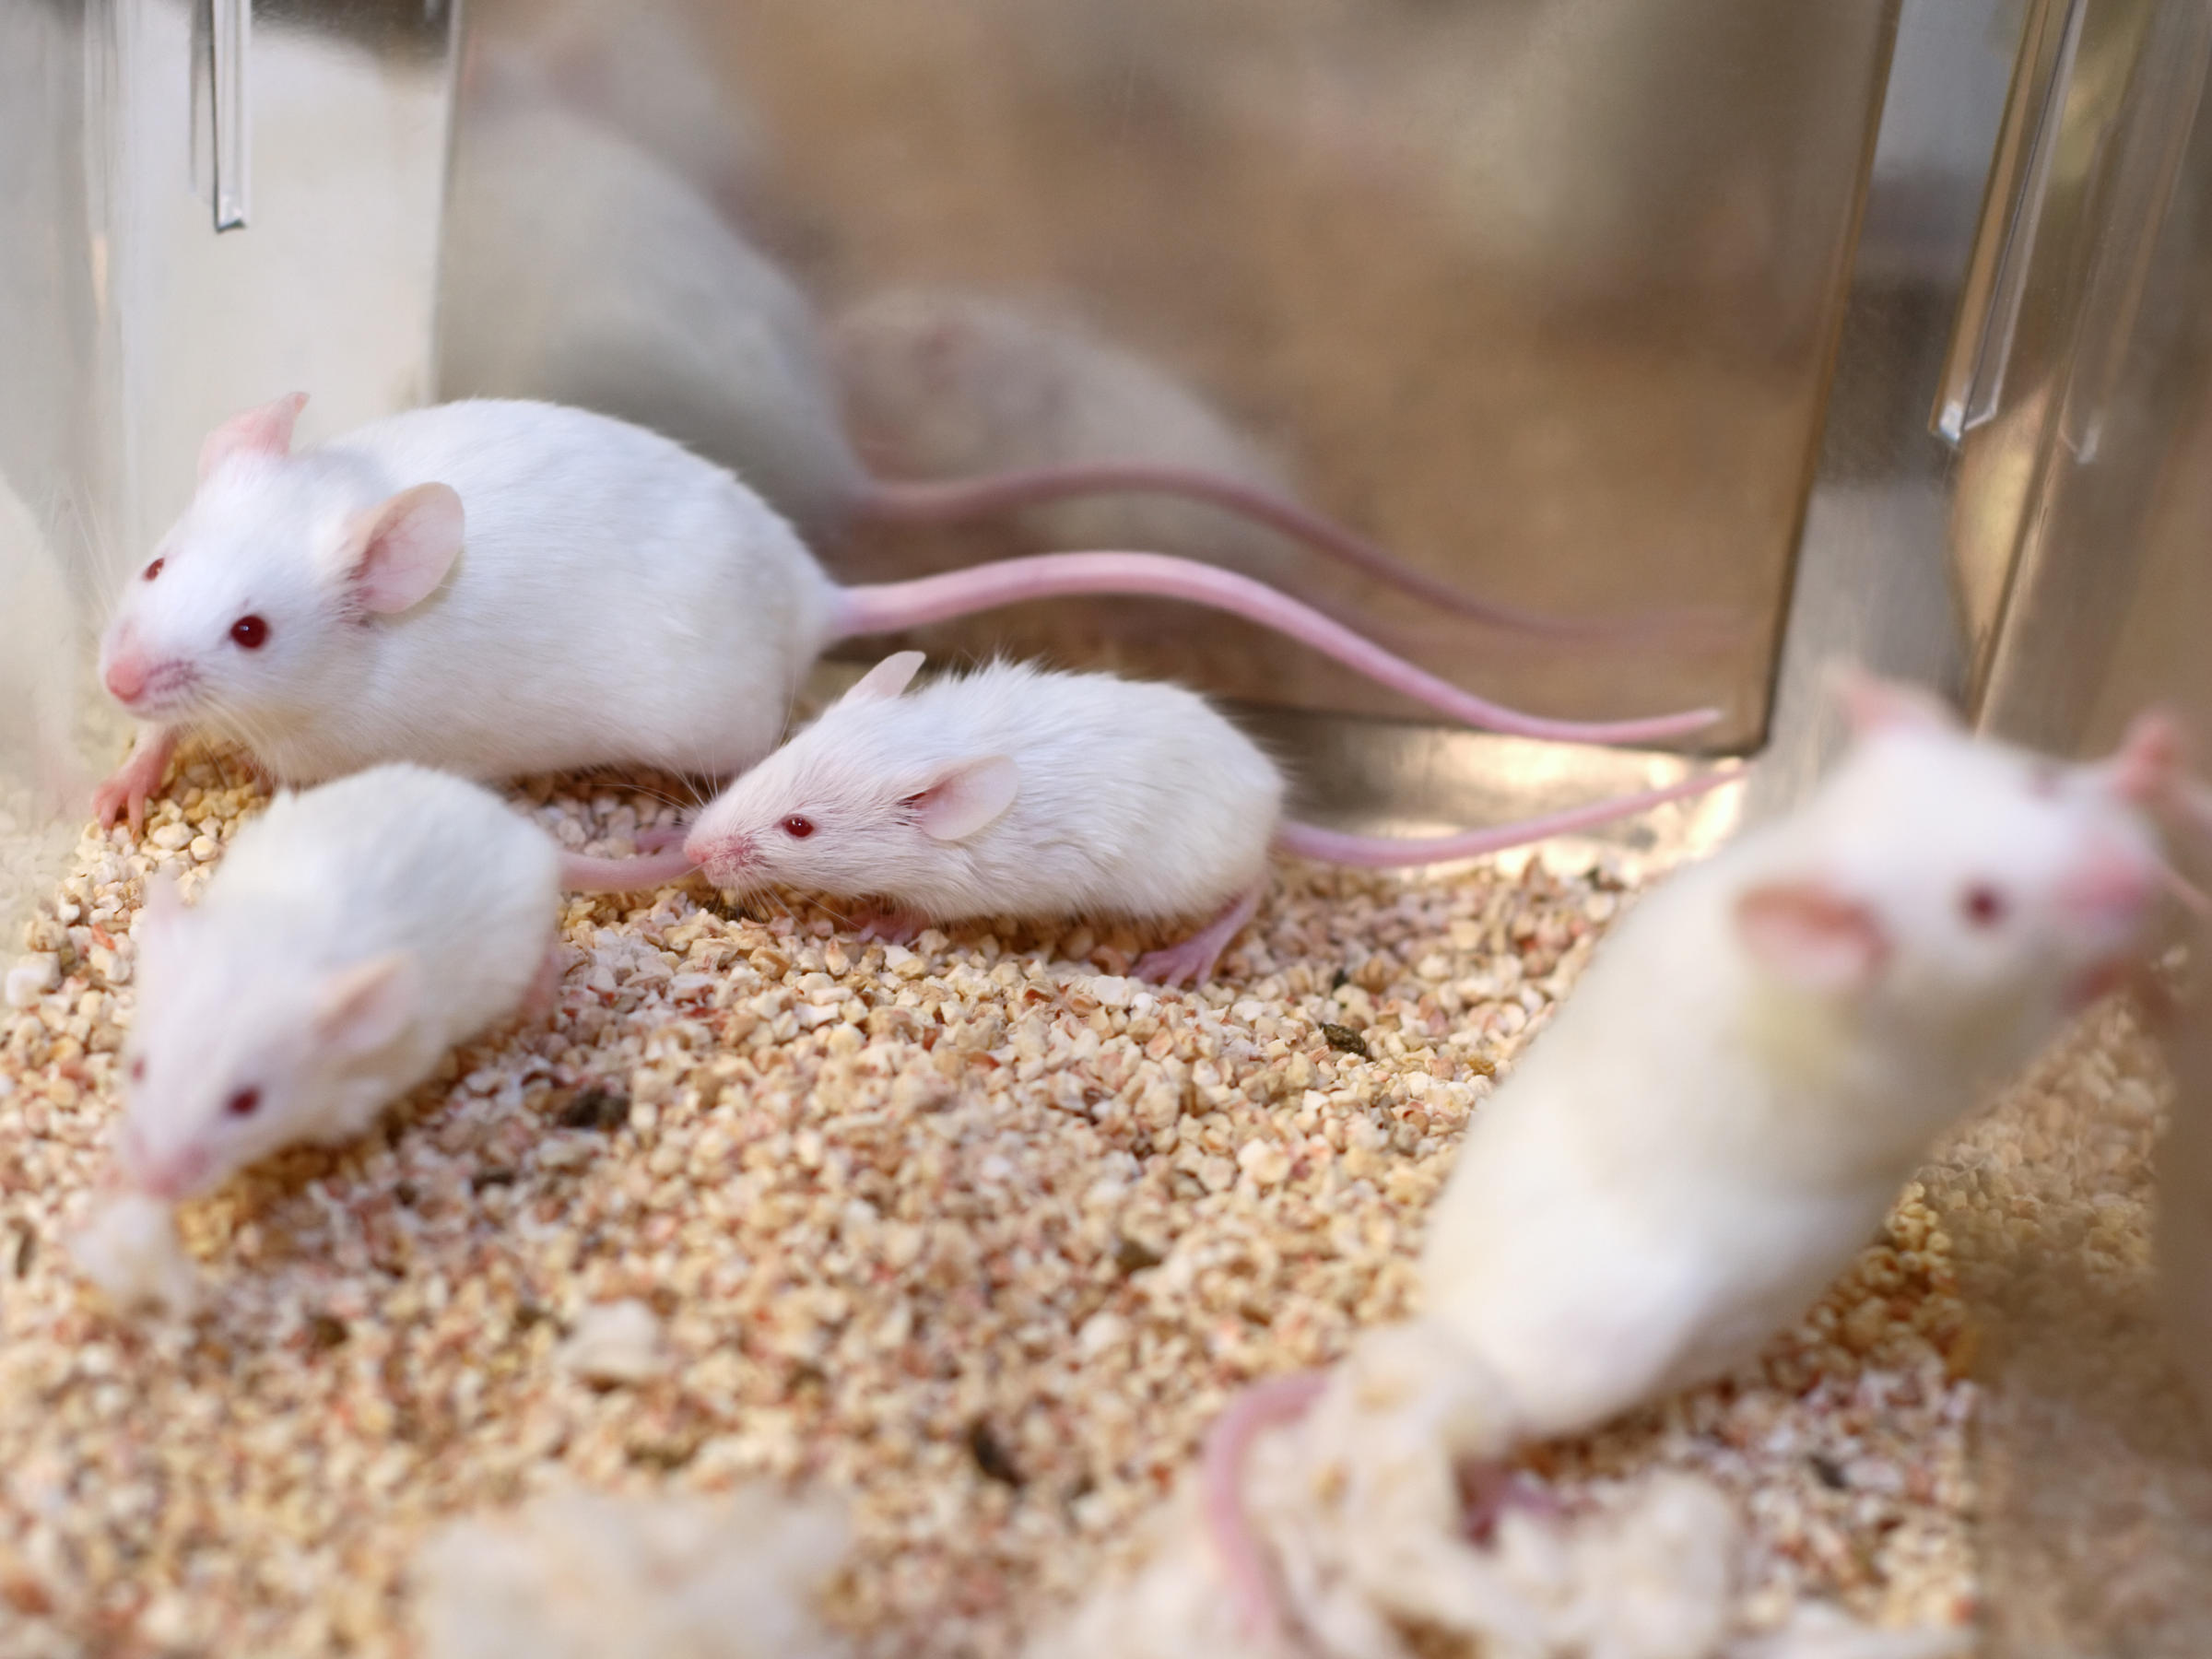 EPA Chief Pledges To Severely Cut Back On Animal Testing Of Chemicals